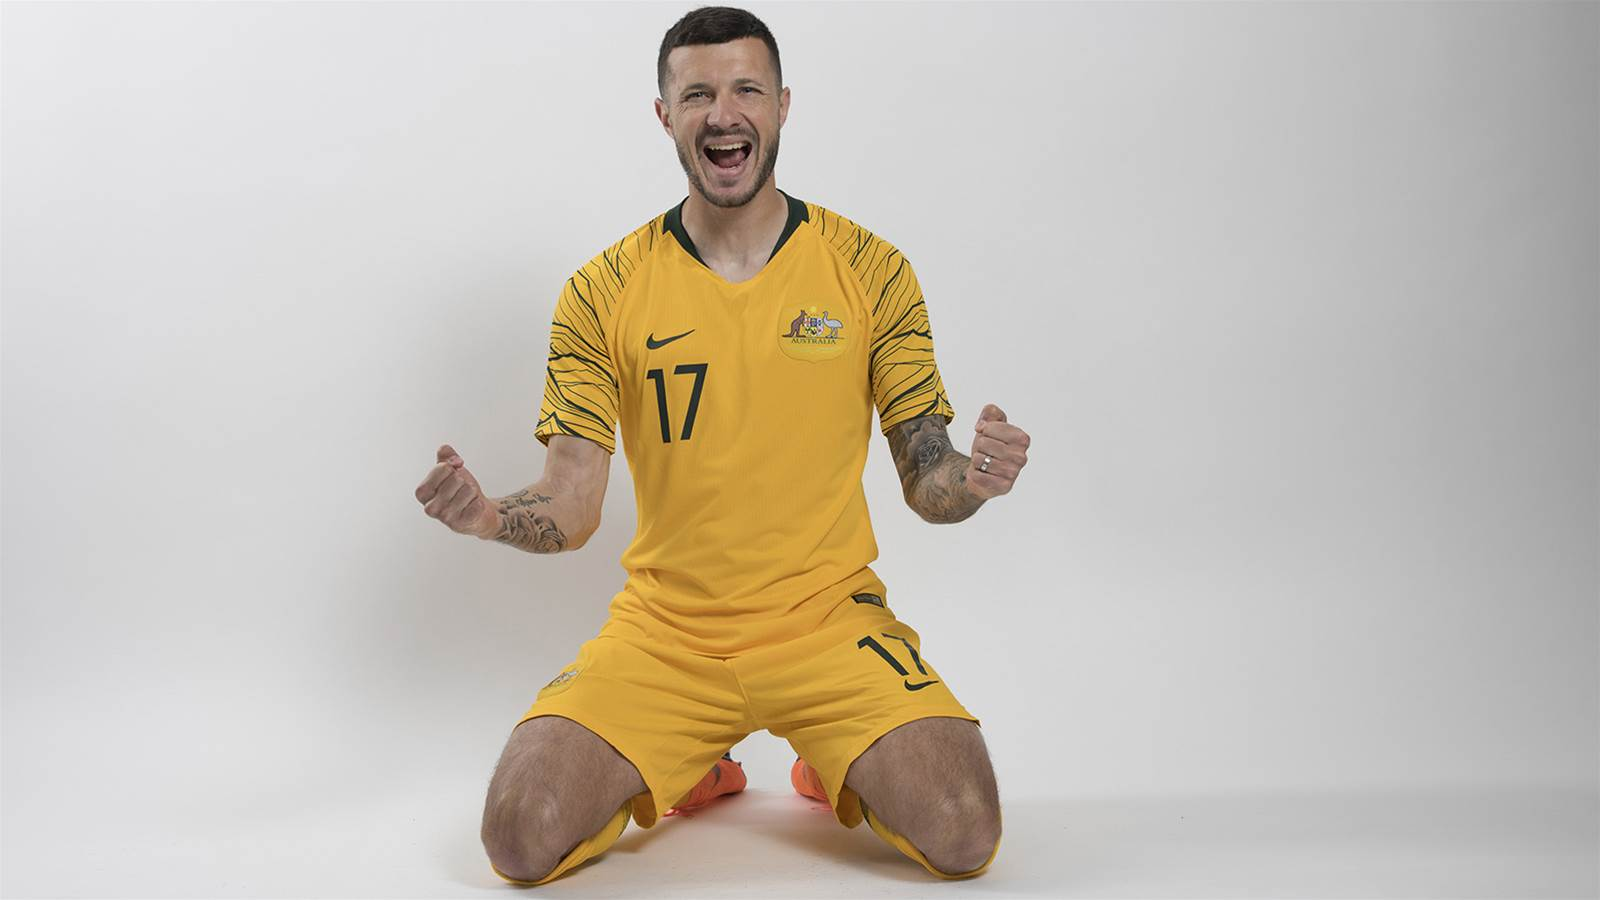 Watch: This Socceroo's sweet goal